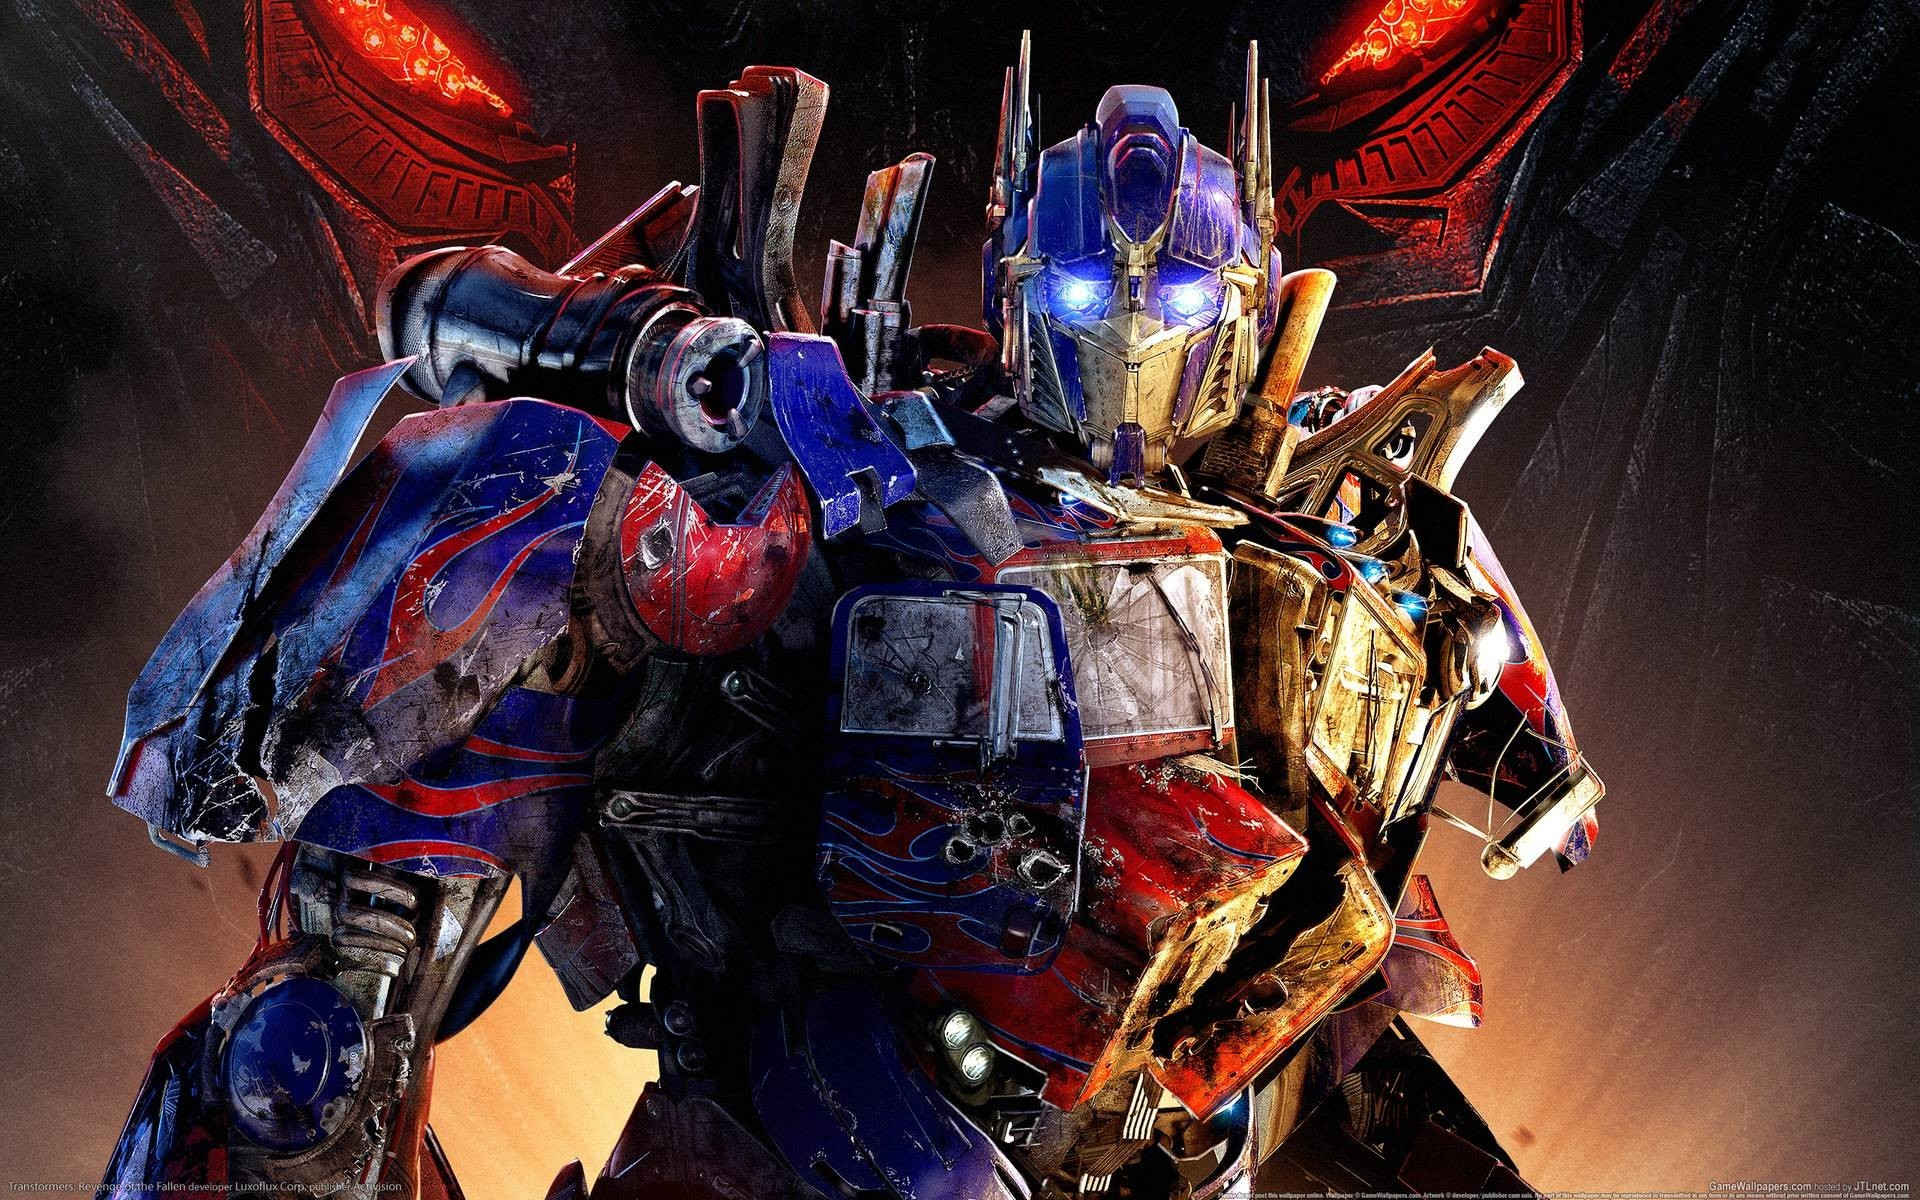 1920x1200 1920x1080 Download This Wallpaper · Download · 1920x1080 Transformers Optimus  Prime ...